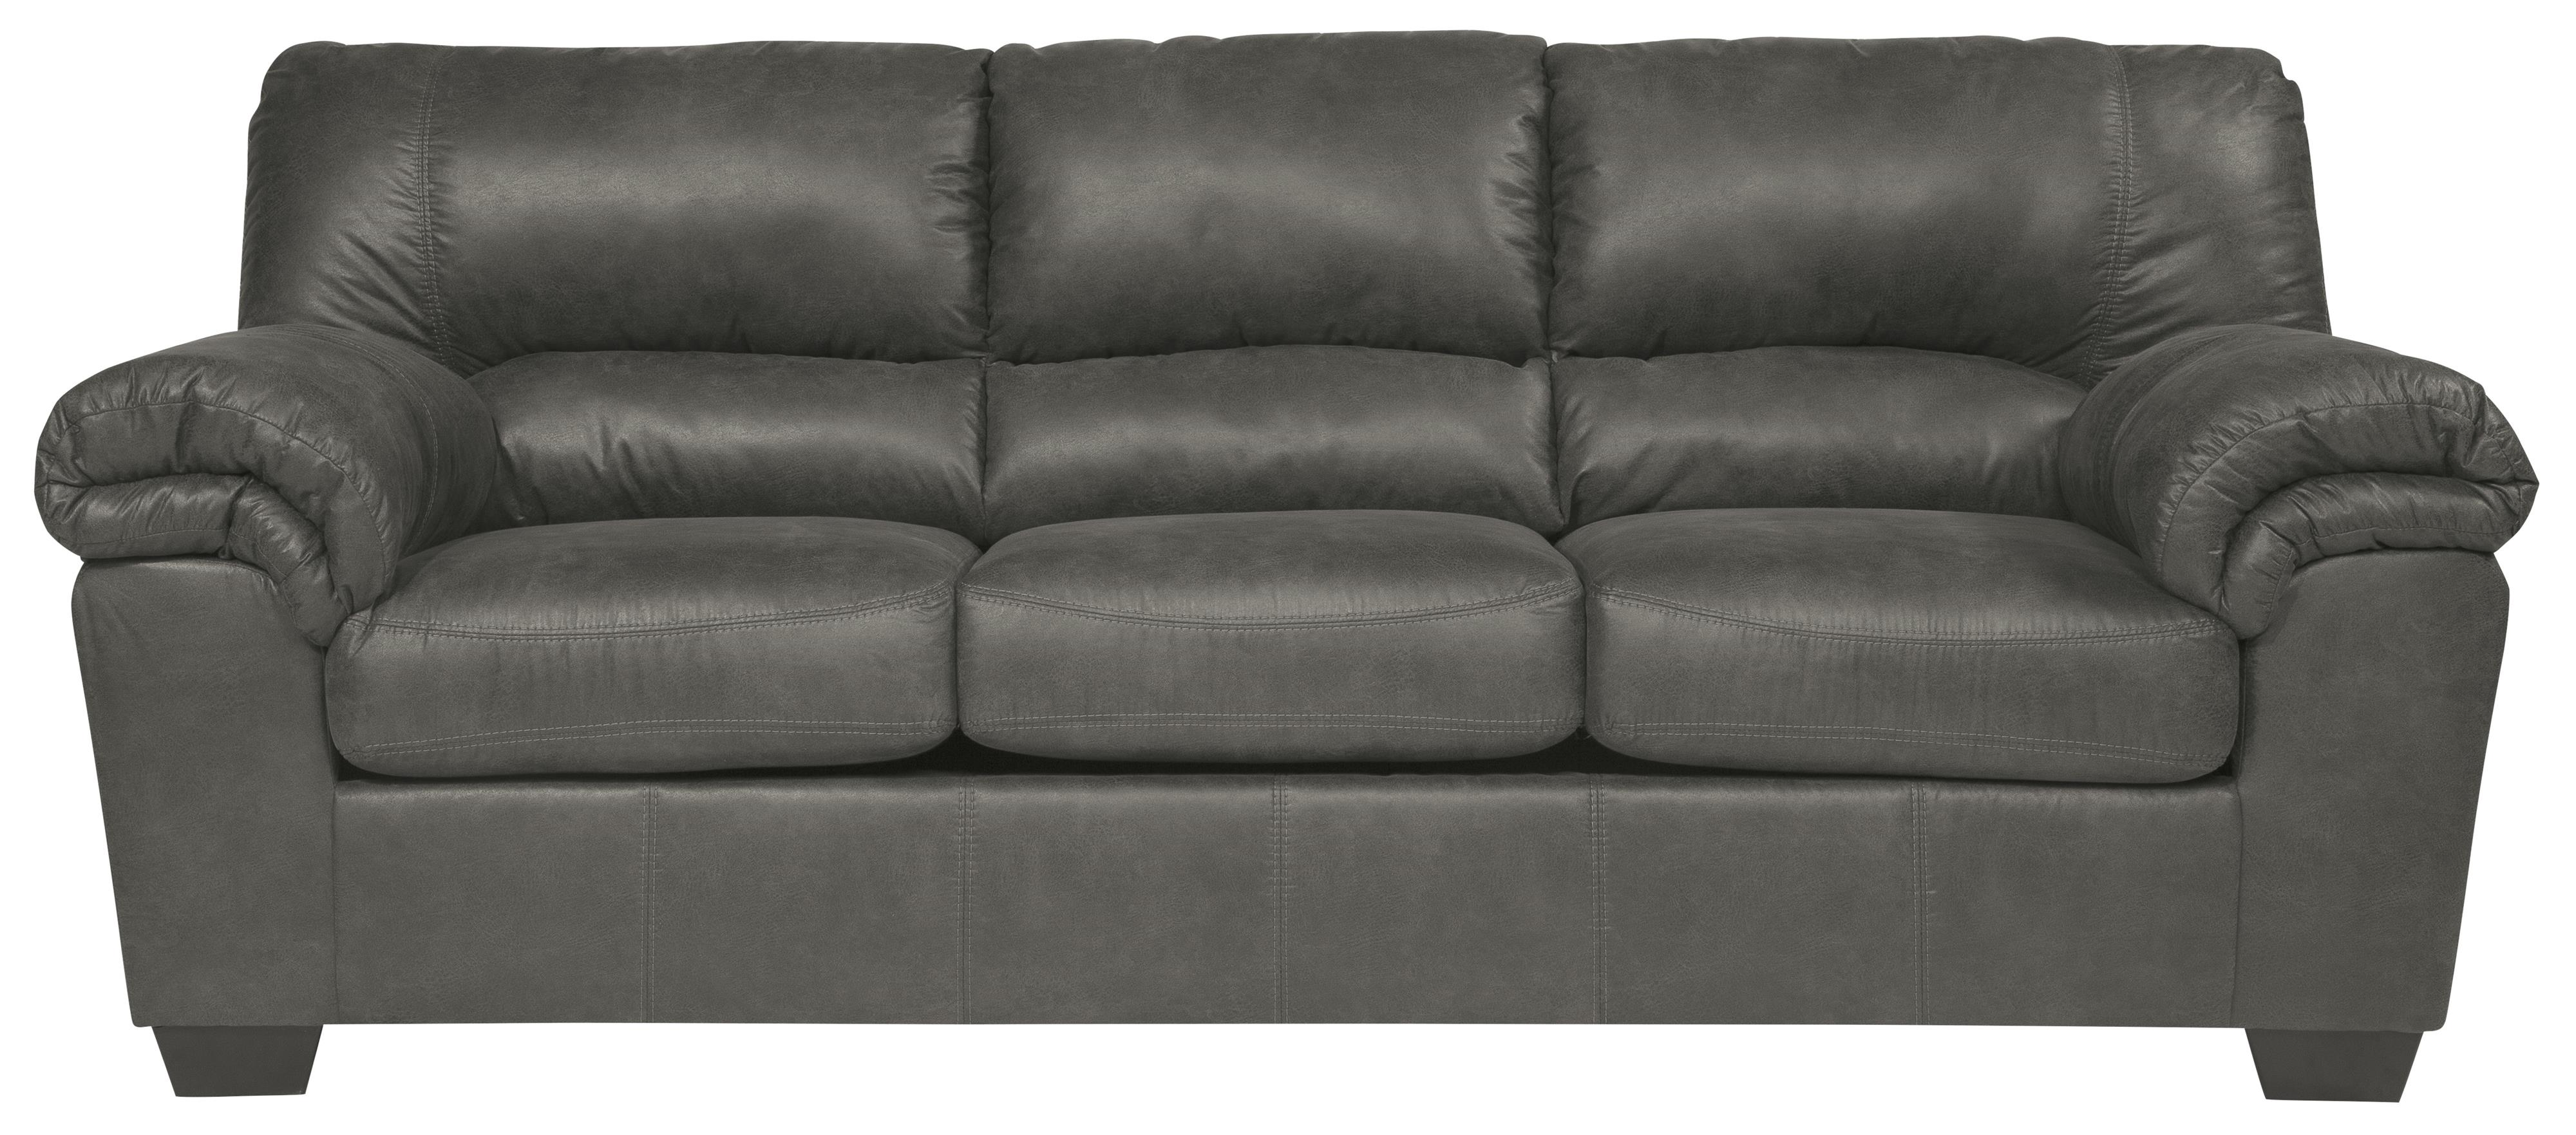 casual faux leather full sofa sleeper by signature design by ashley wolf and gardiner wolf. Black Bedroom Furniture Sets. Home Design Ideas